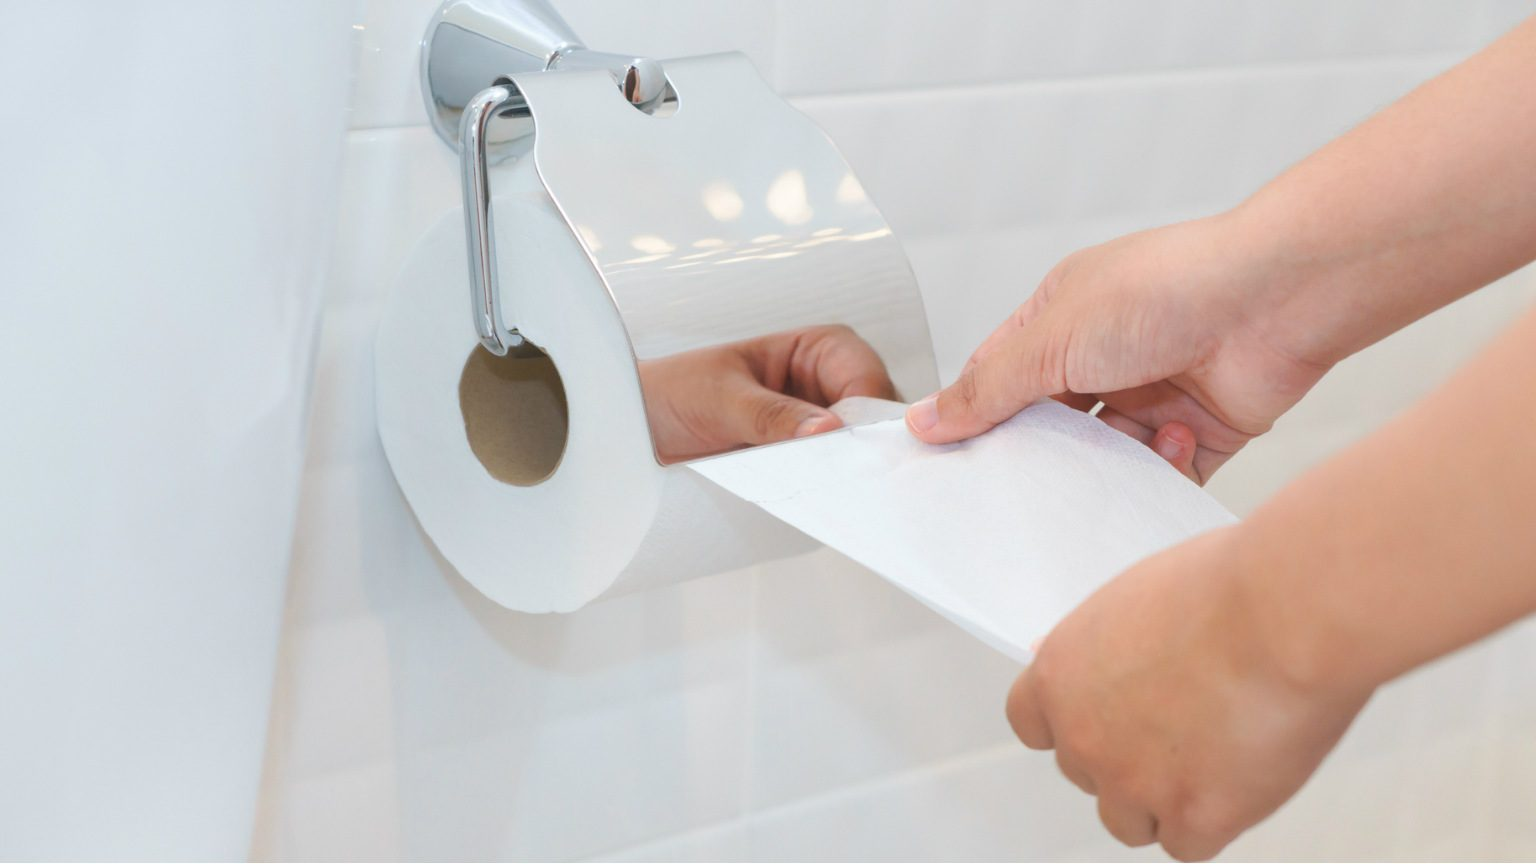 Top 18 Best Alternatives to Toilet Paper